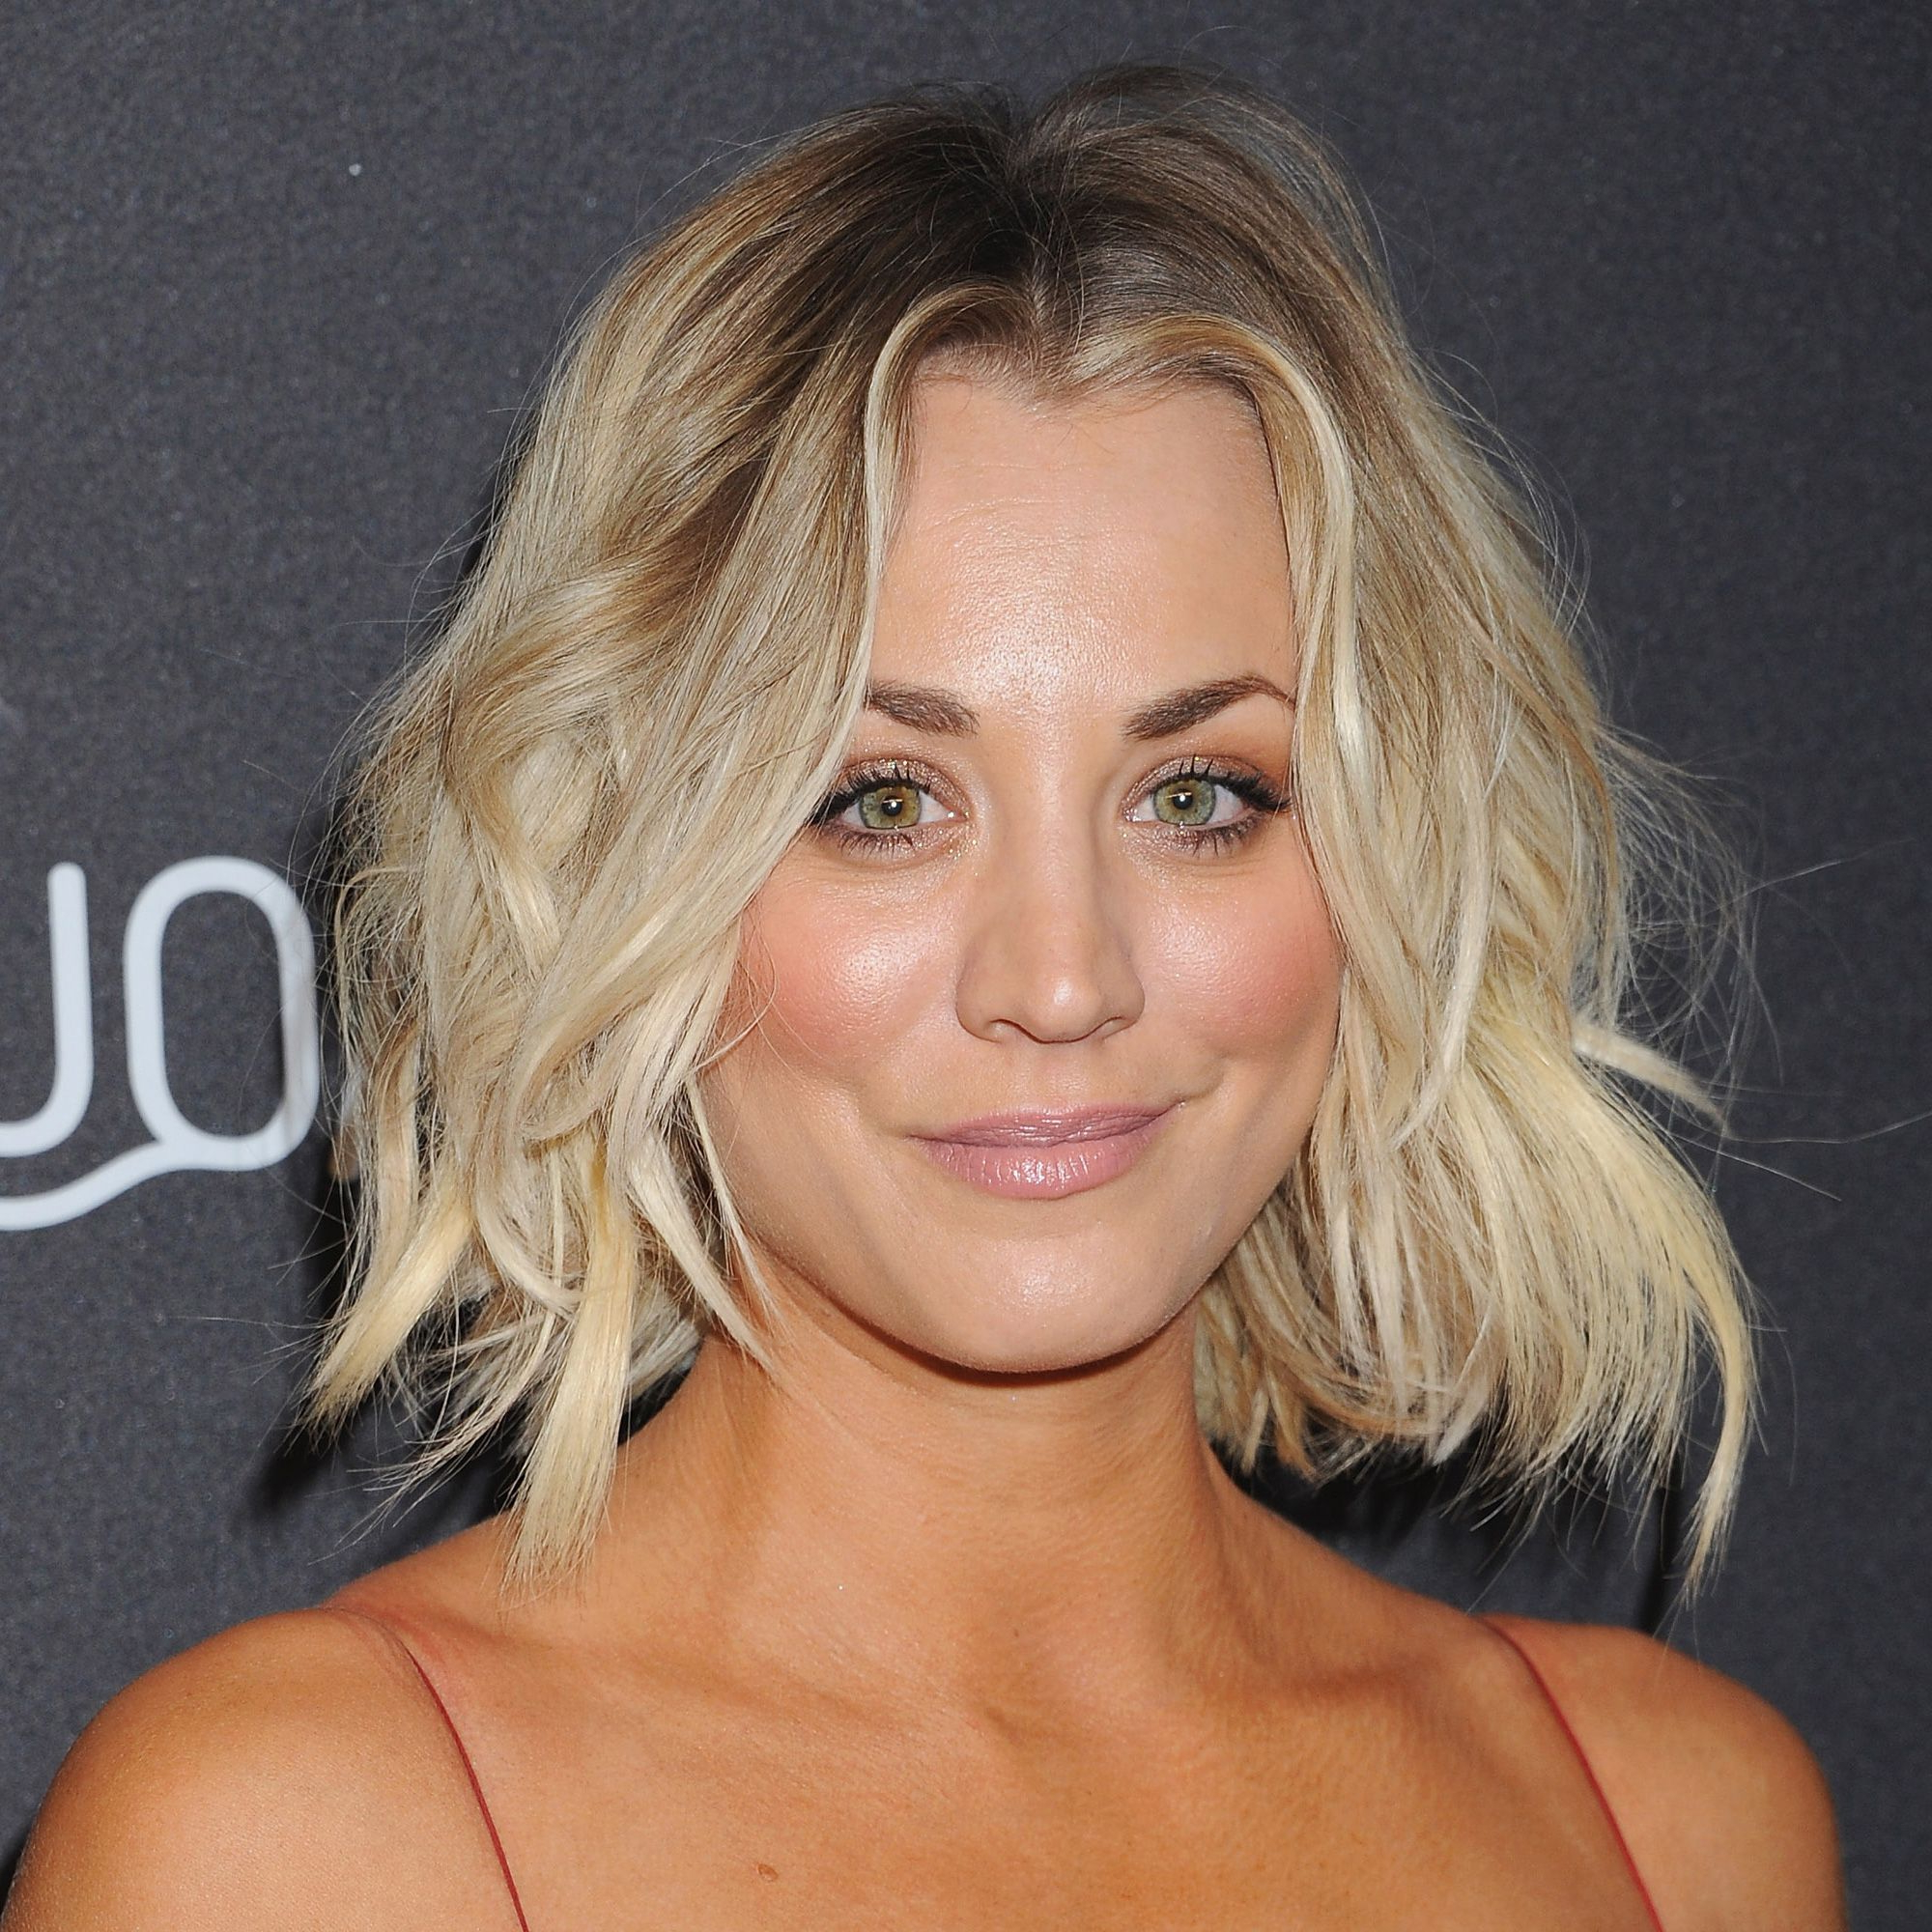 87 Cute Short Hairstyles & Haircuts – How To Style Short Hair Pertaining To Kaley Cuoco Short Hairstyles (View 13 of 25)